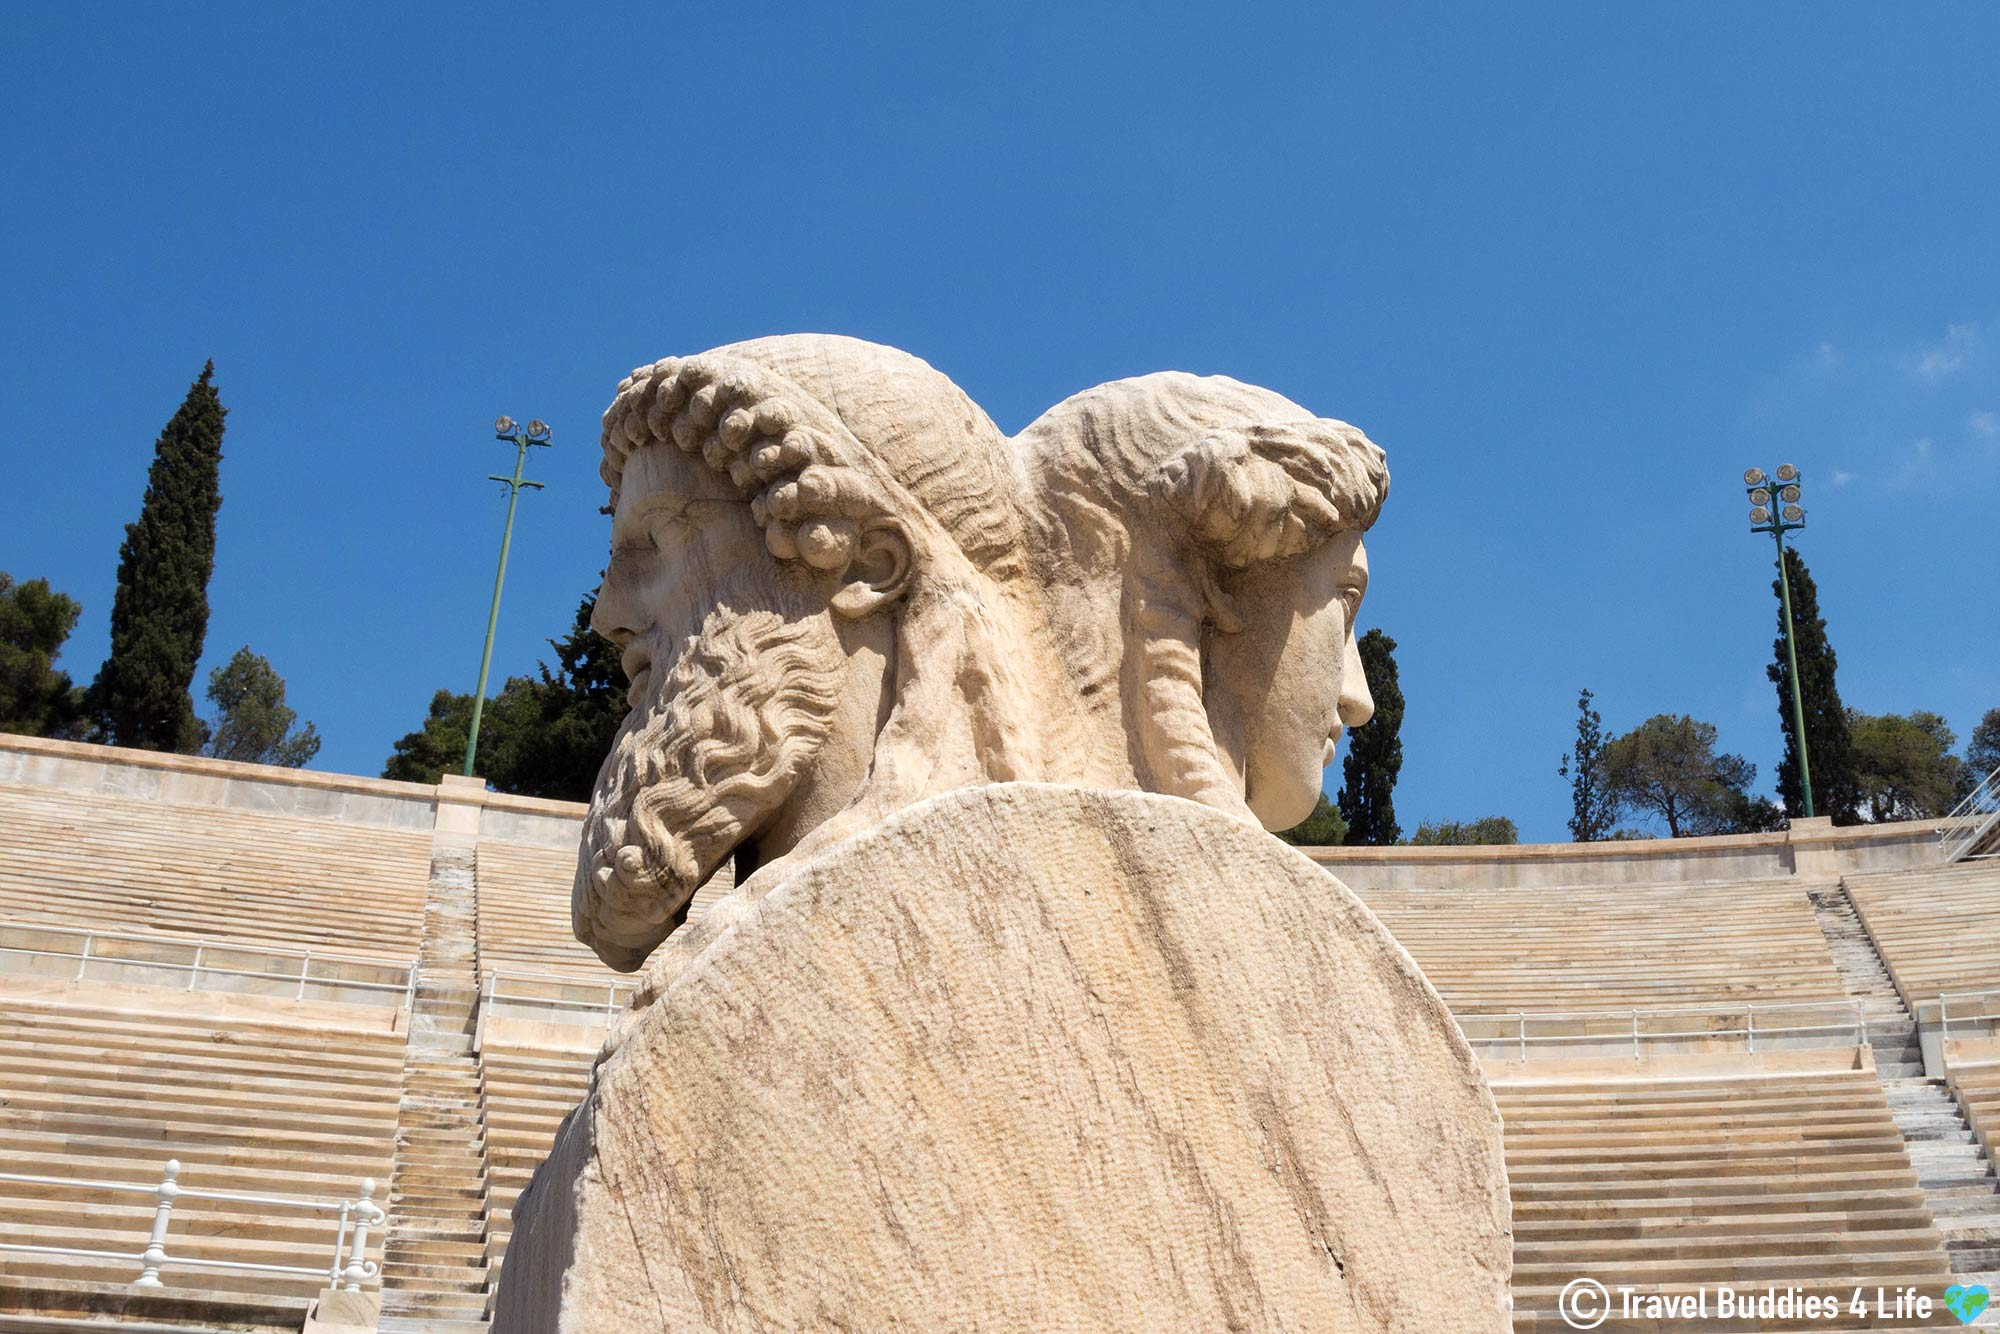 Man And Boy Bust Statue At The Panathenaic Stadium In Athens, Greece, Europe